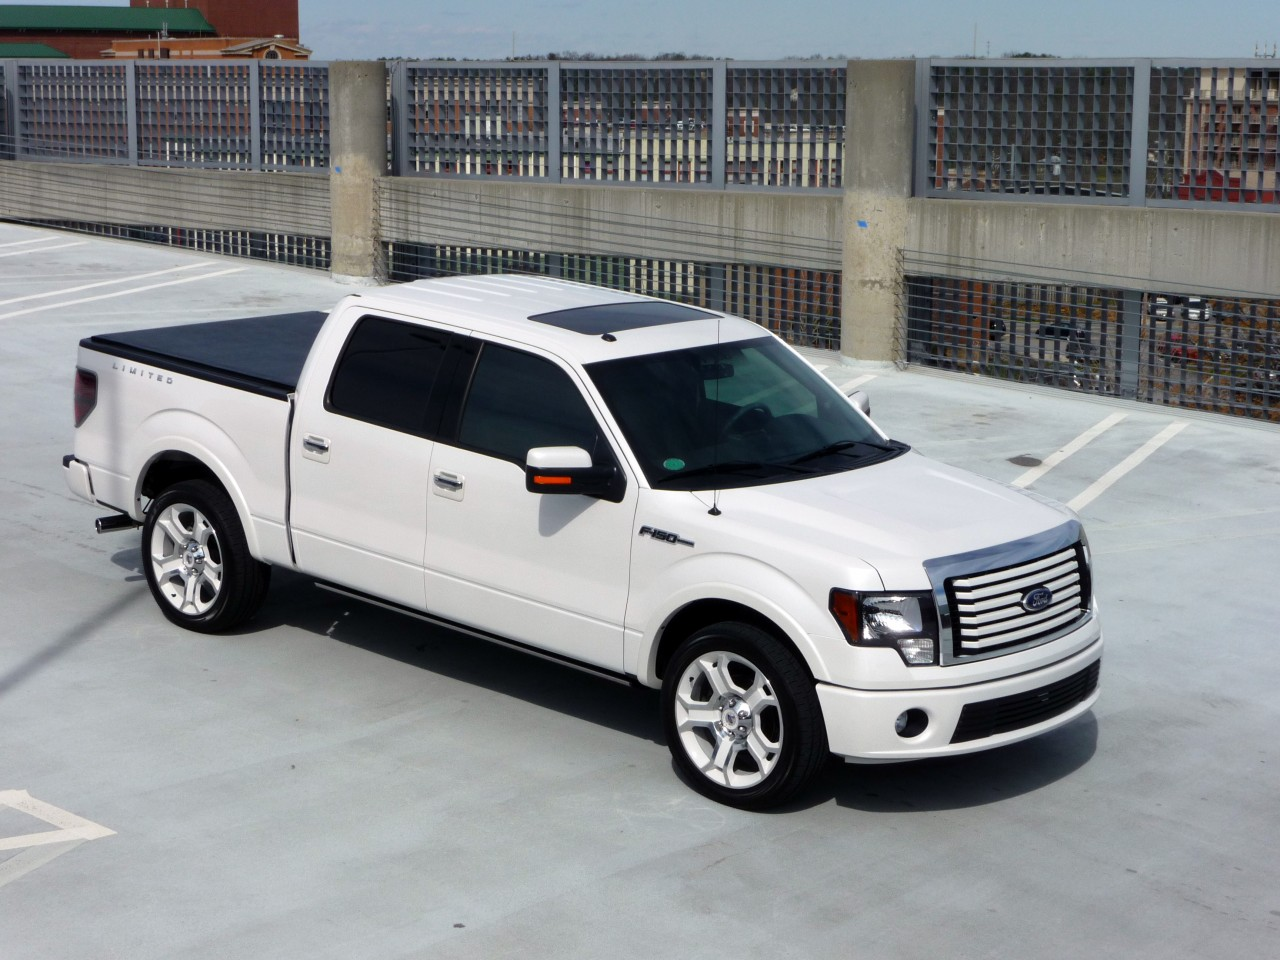 Where are the F150 Limited owners at? - F150online Forums